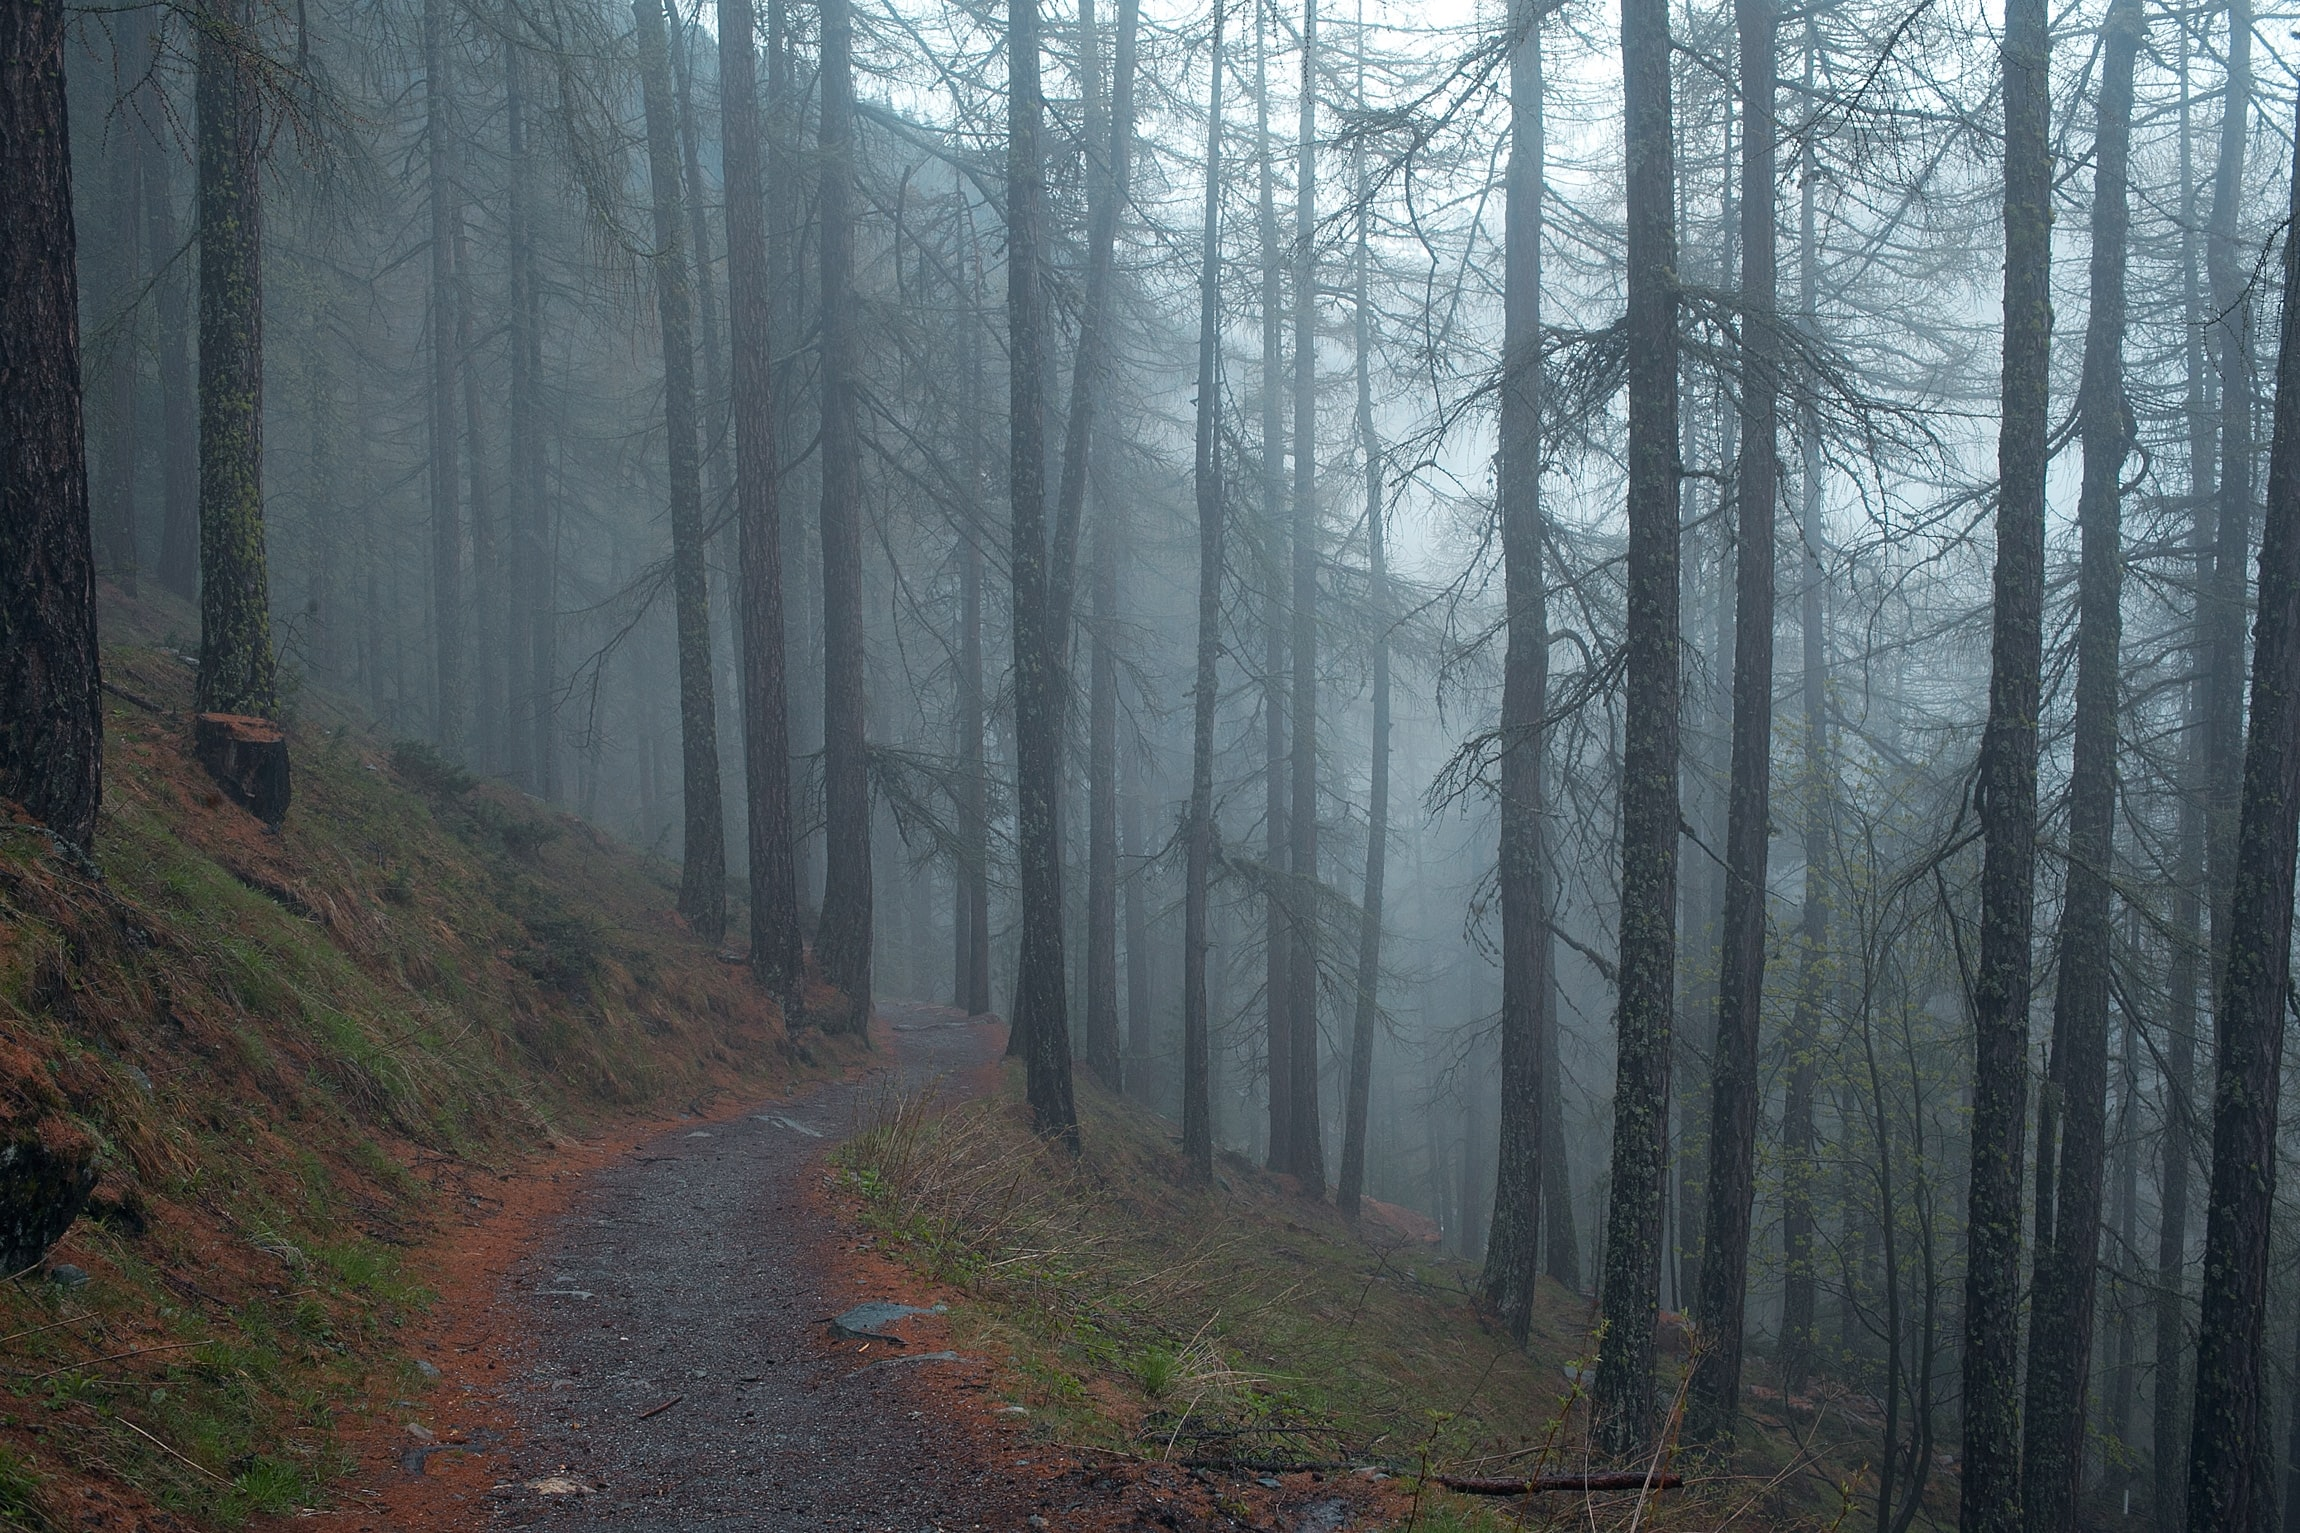 A winding footpath in a mist-shrouded forest